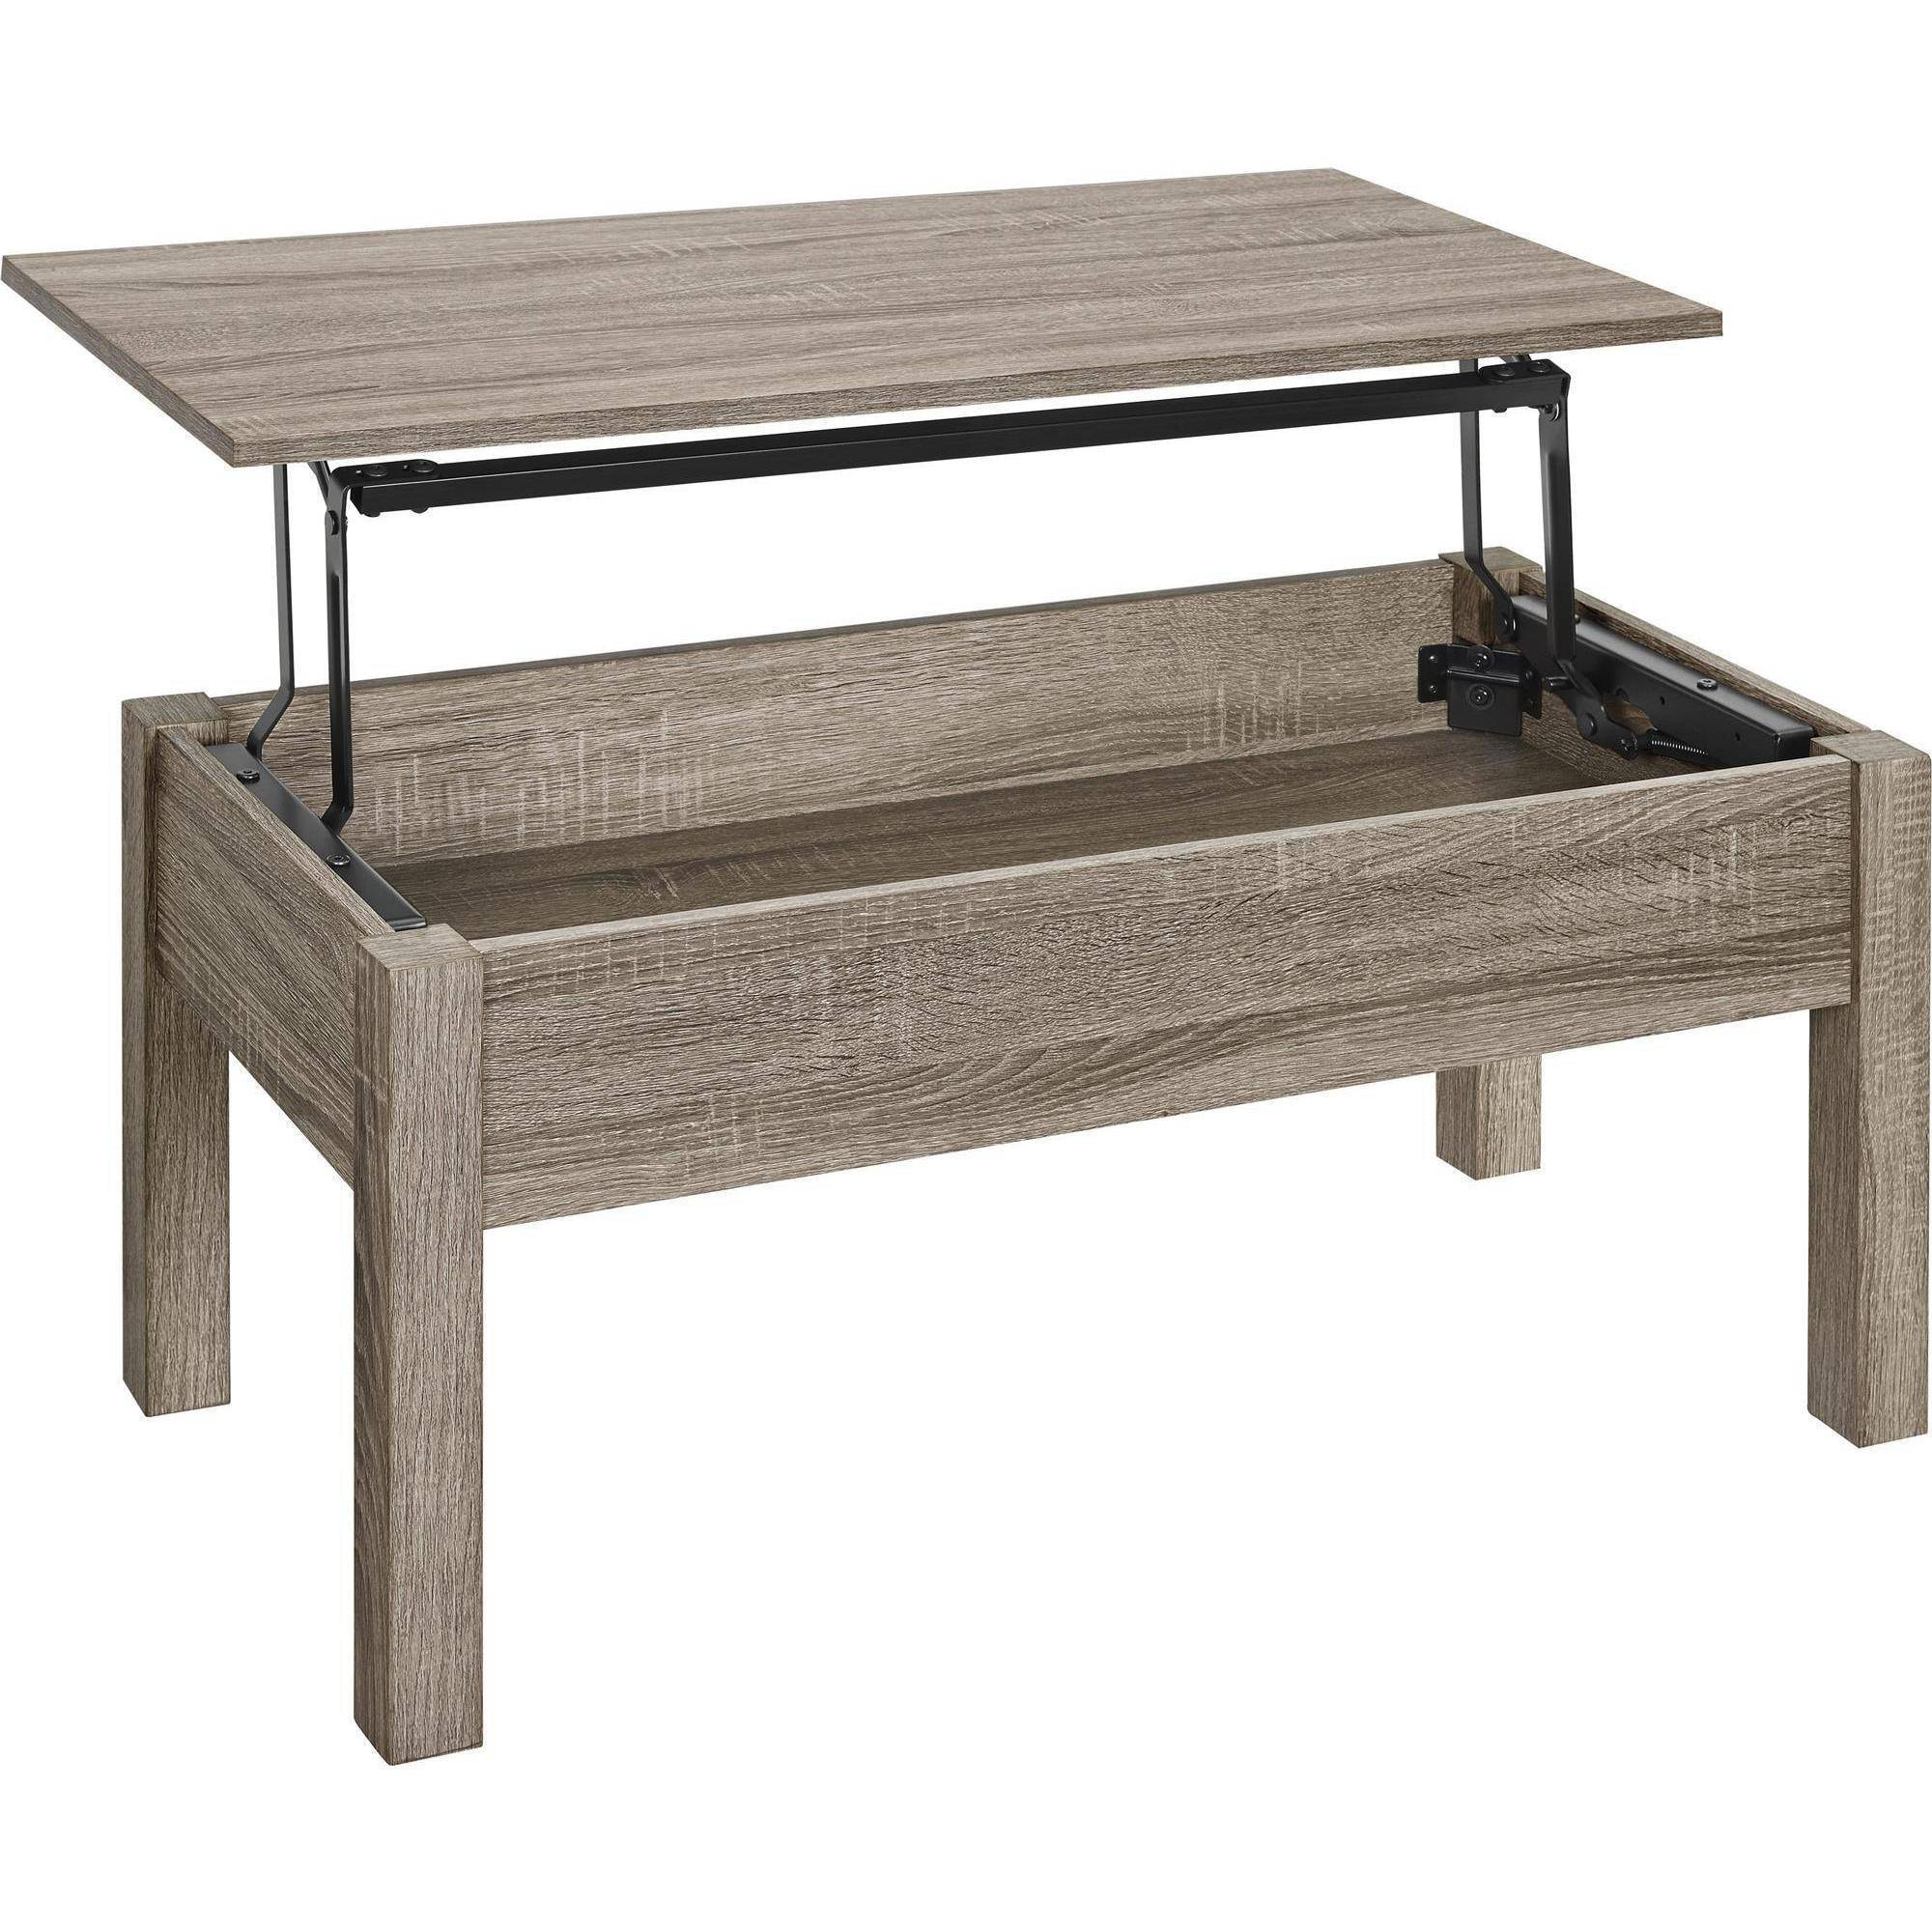 Mainstays Lift-Top Coffee Table, Multiple Colors - Walmart with regard to Lift Coffee Tables (Image 17 of 30)